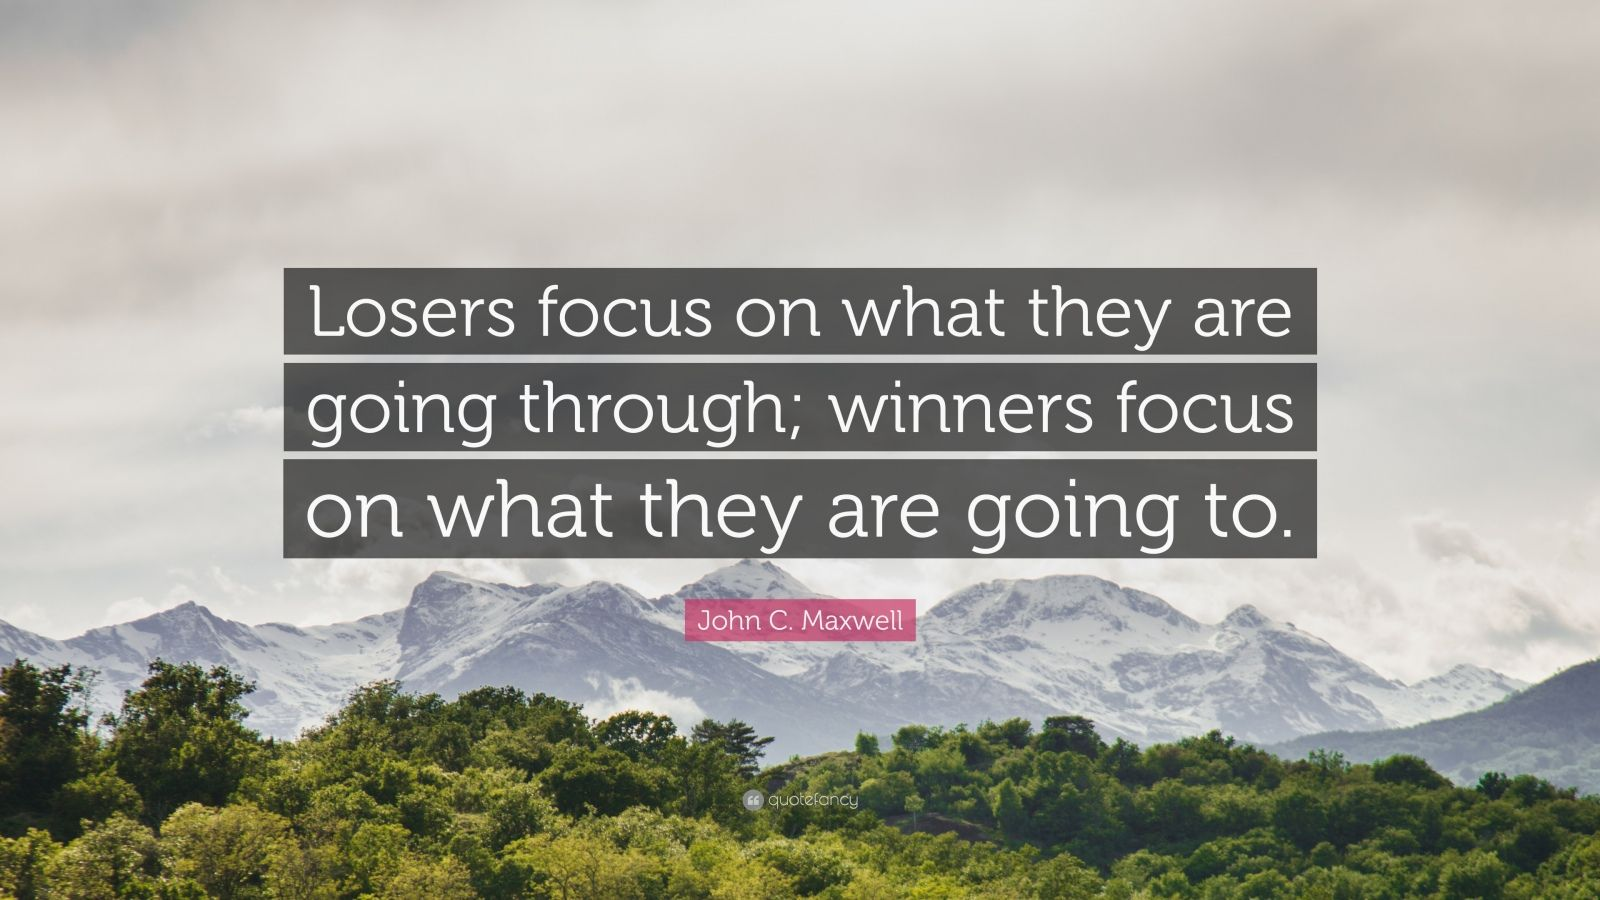 """John C. Maxwell Quote: """"Losers focus on what they are going through; winners focus on what they are going to."""""""